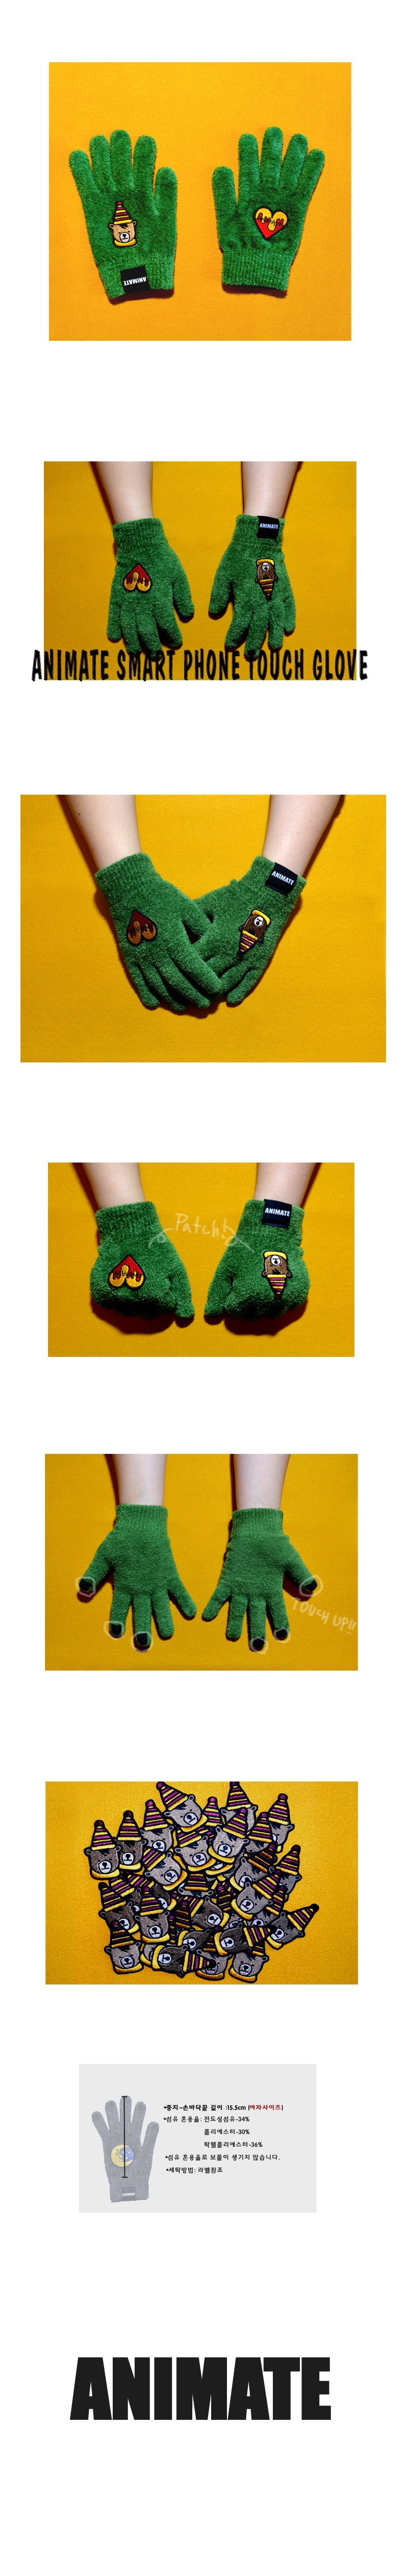 애니메이트(ANIMATE) [ANIMATE] BEAR SMART TOUCH GLOVE (GREEN)